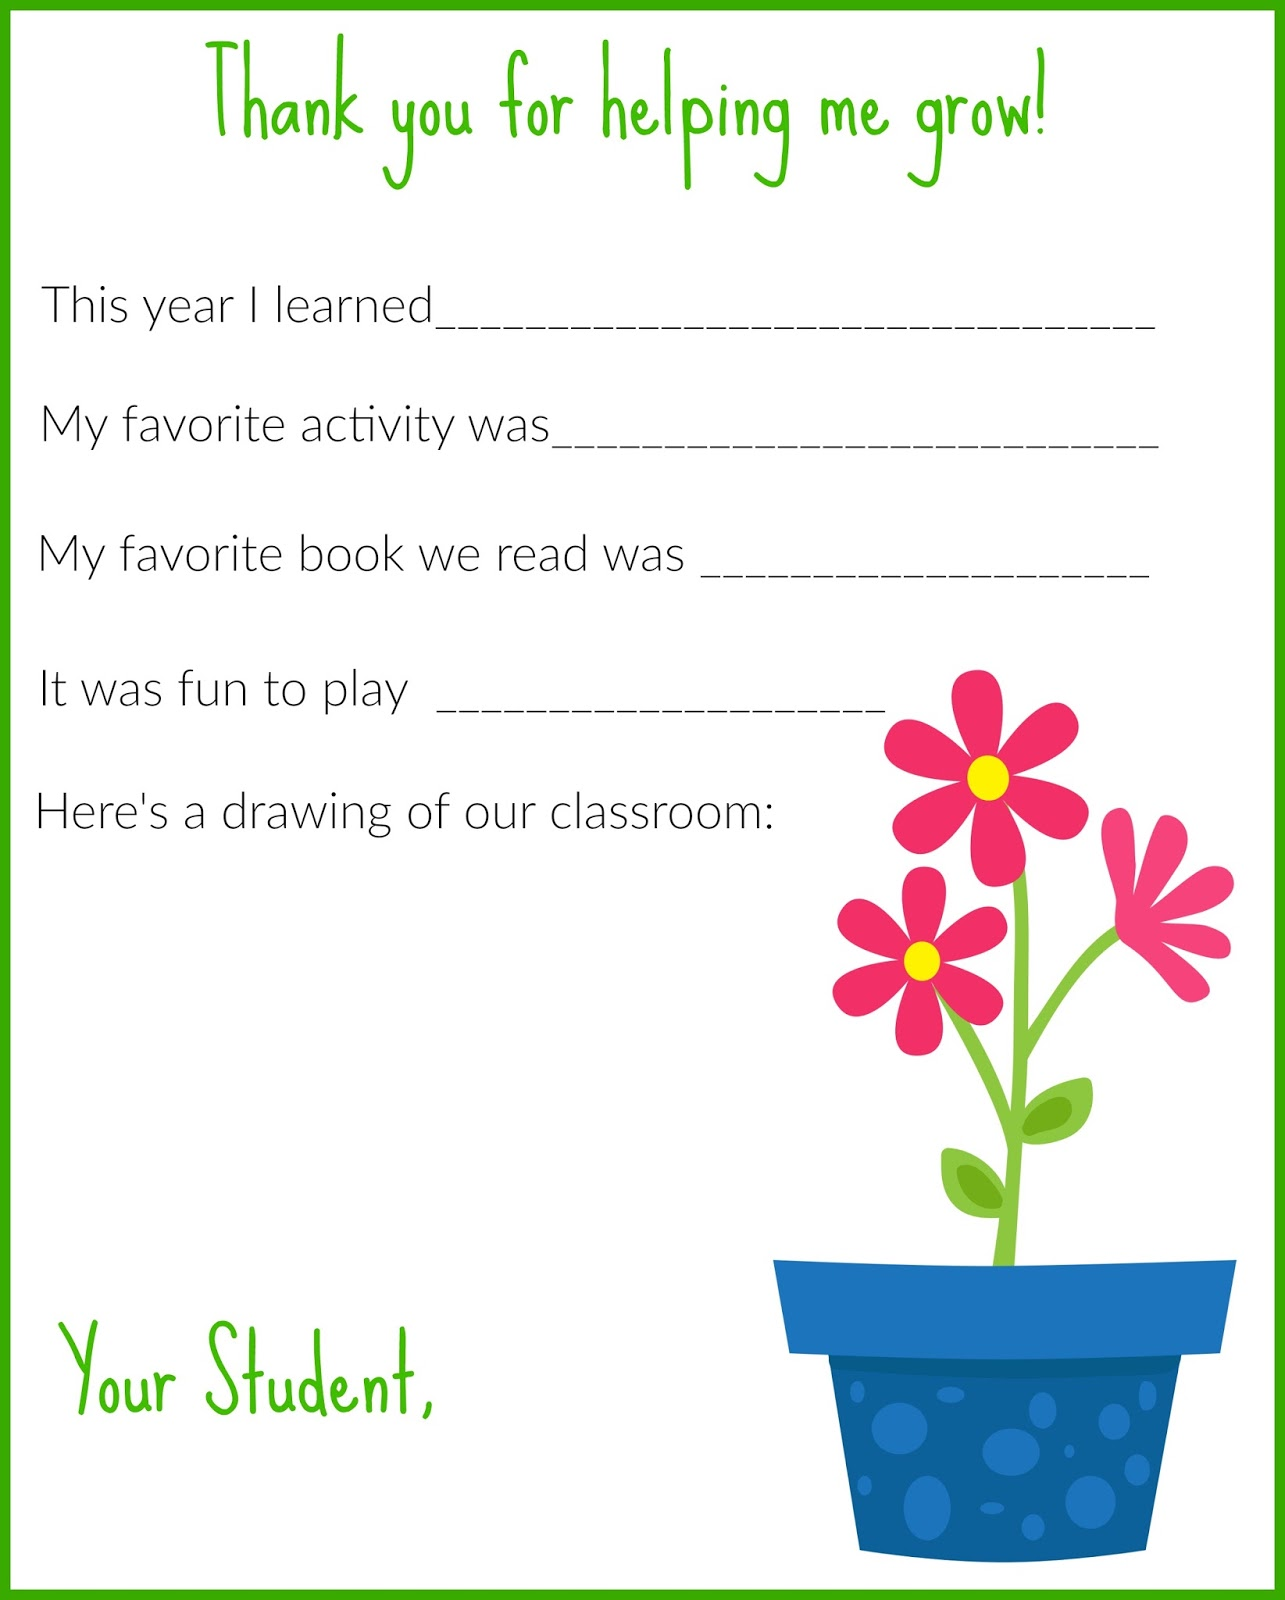 they both enjoyed filling it out and cant wait to present them to their teachers on the last day of school it would be cute to pair it with a plant to